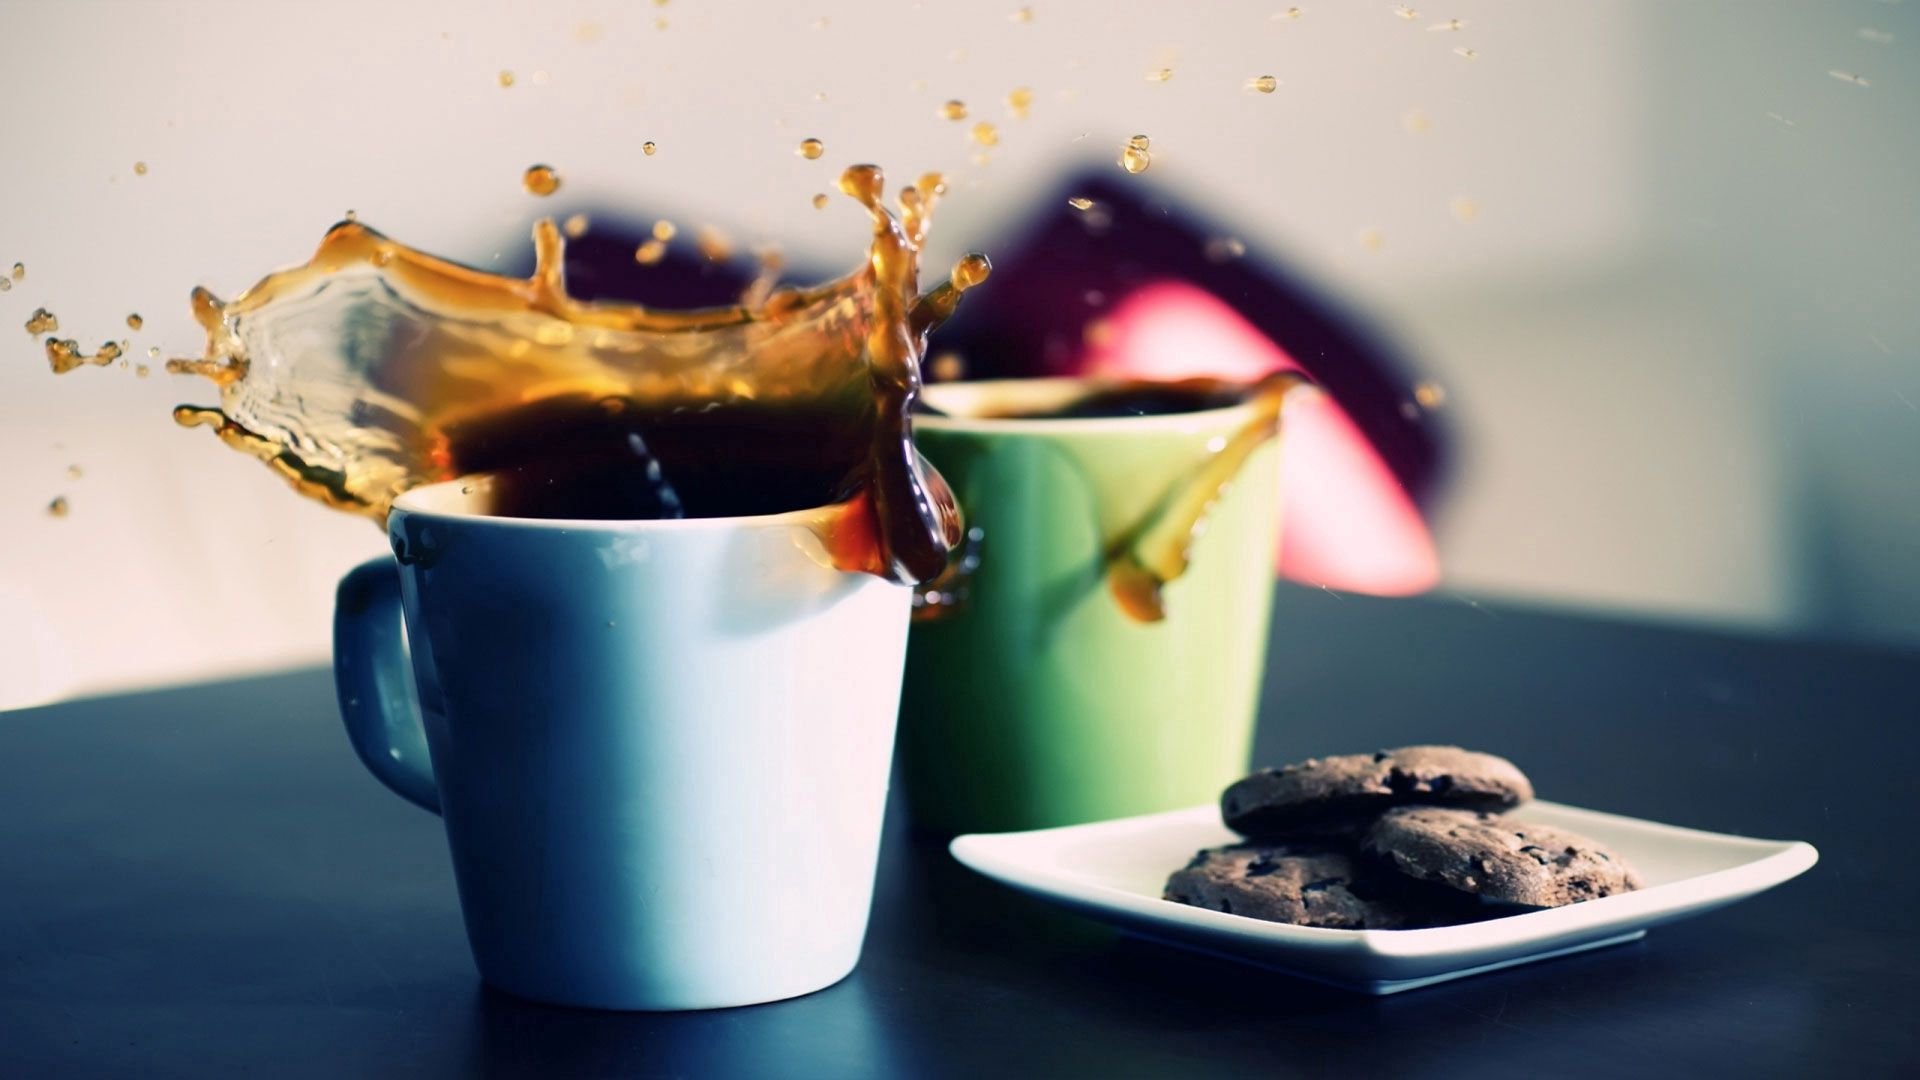 122812 download wallpaper Food, Coffee, Goblets, Glasses, Spray, Plates, Cymbals, Cookies screensavers and pictures for free